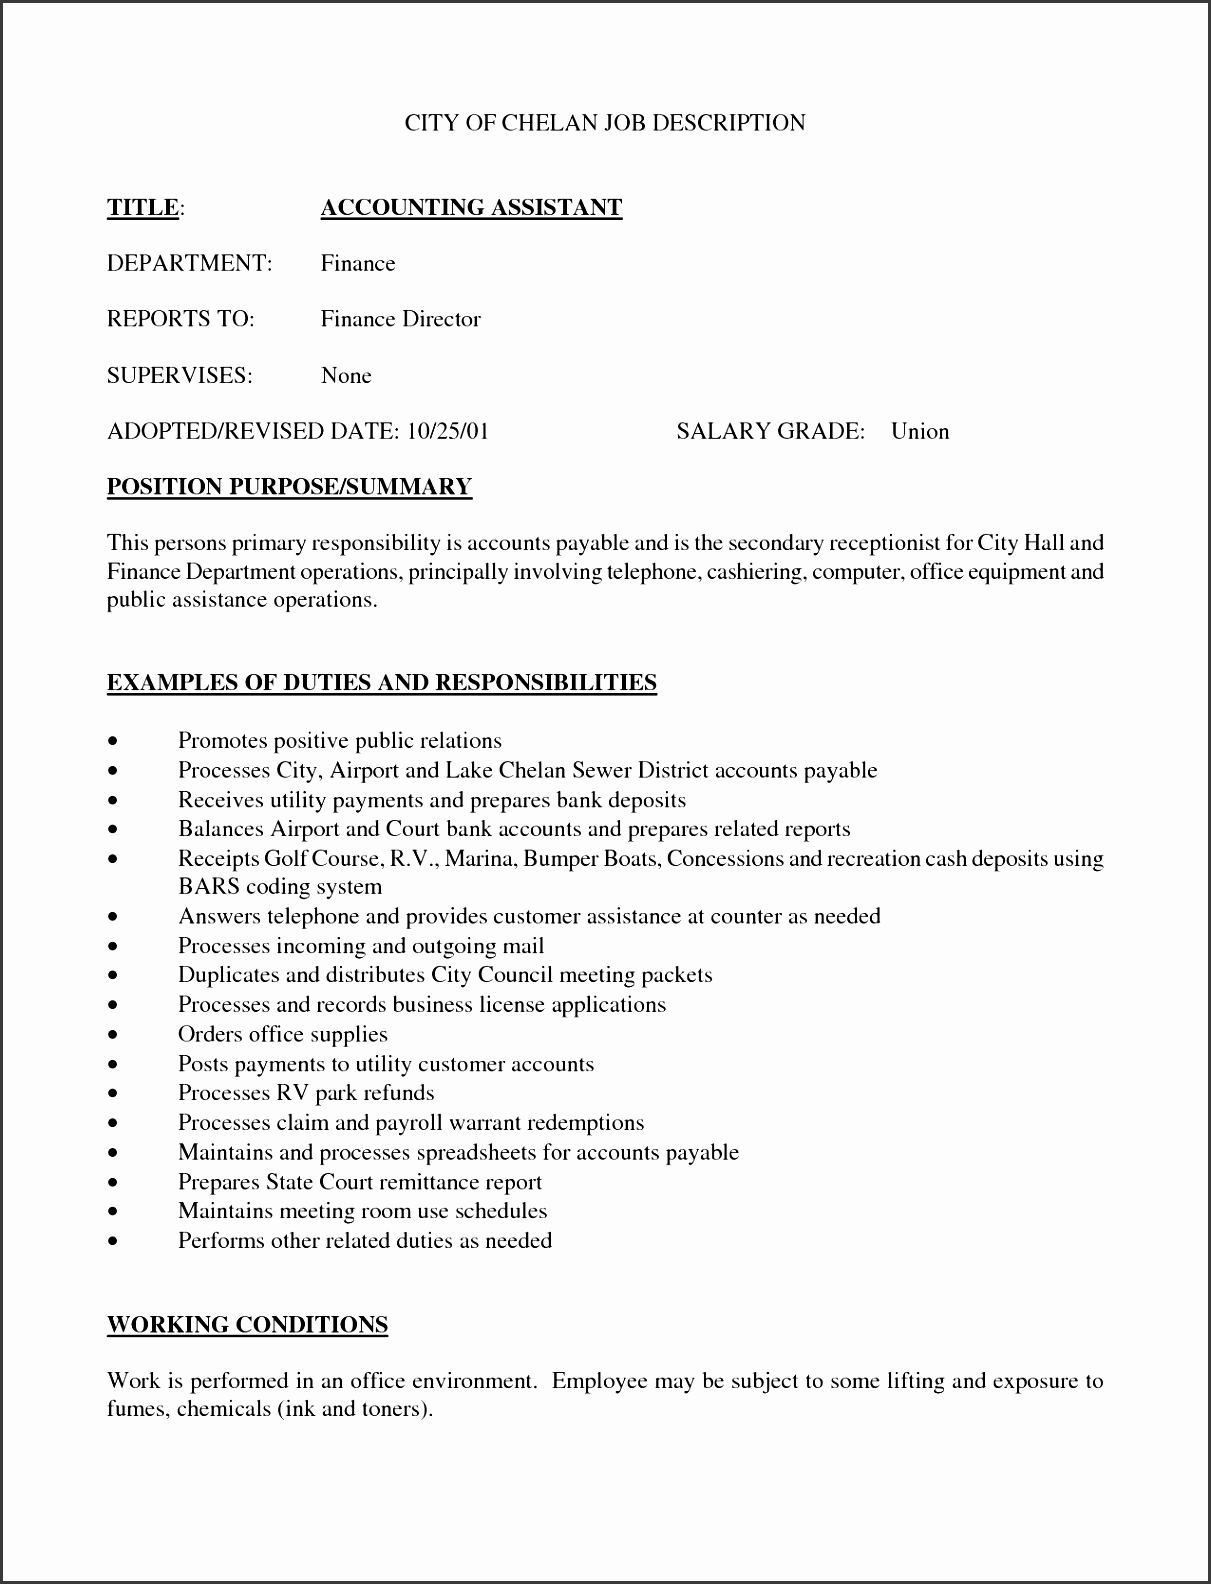 7 job description format - sampletemplatess